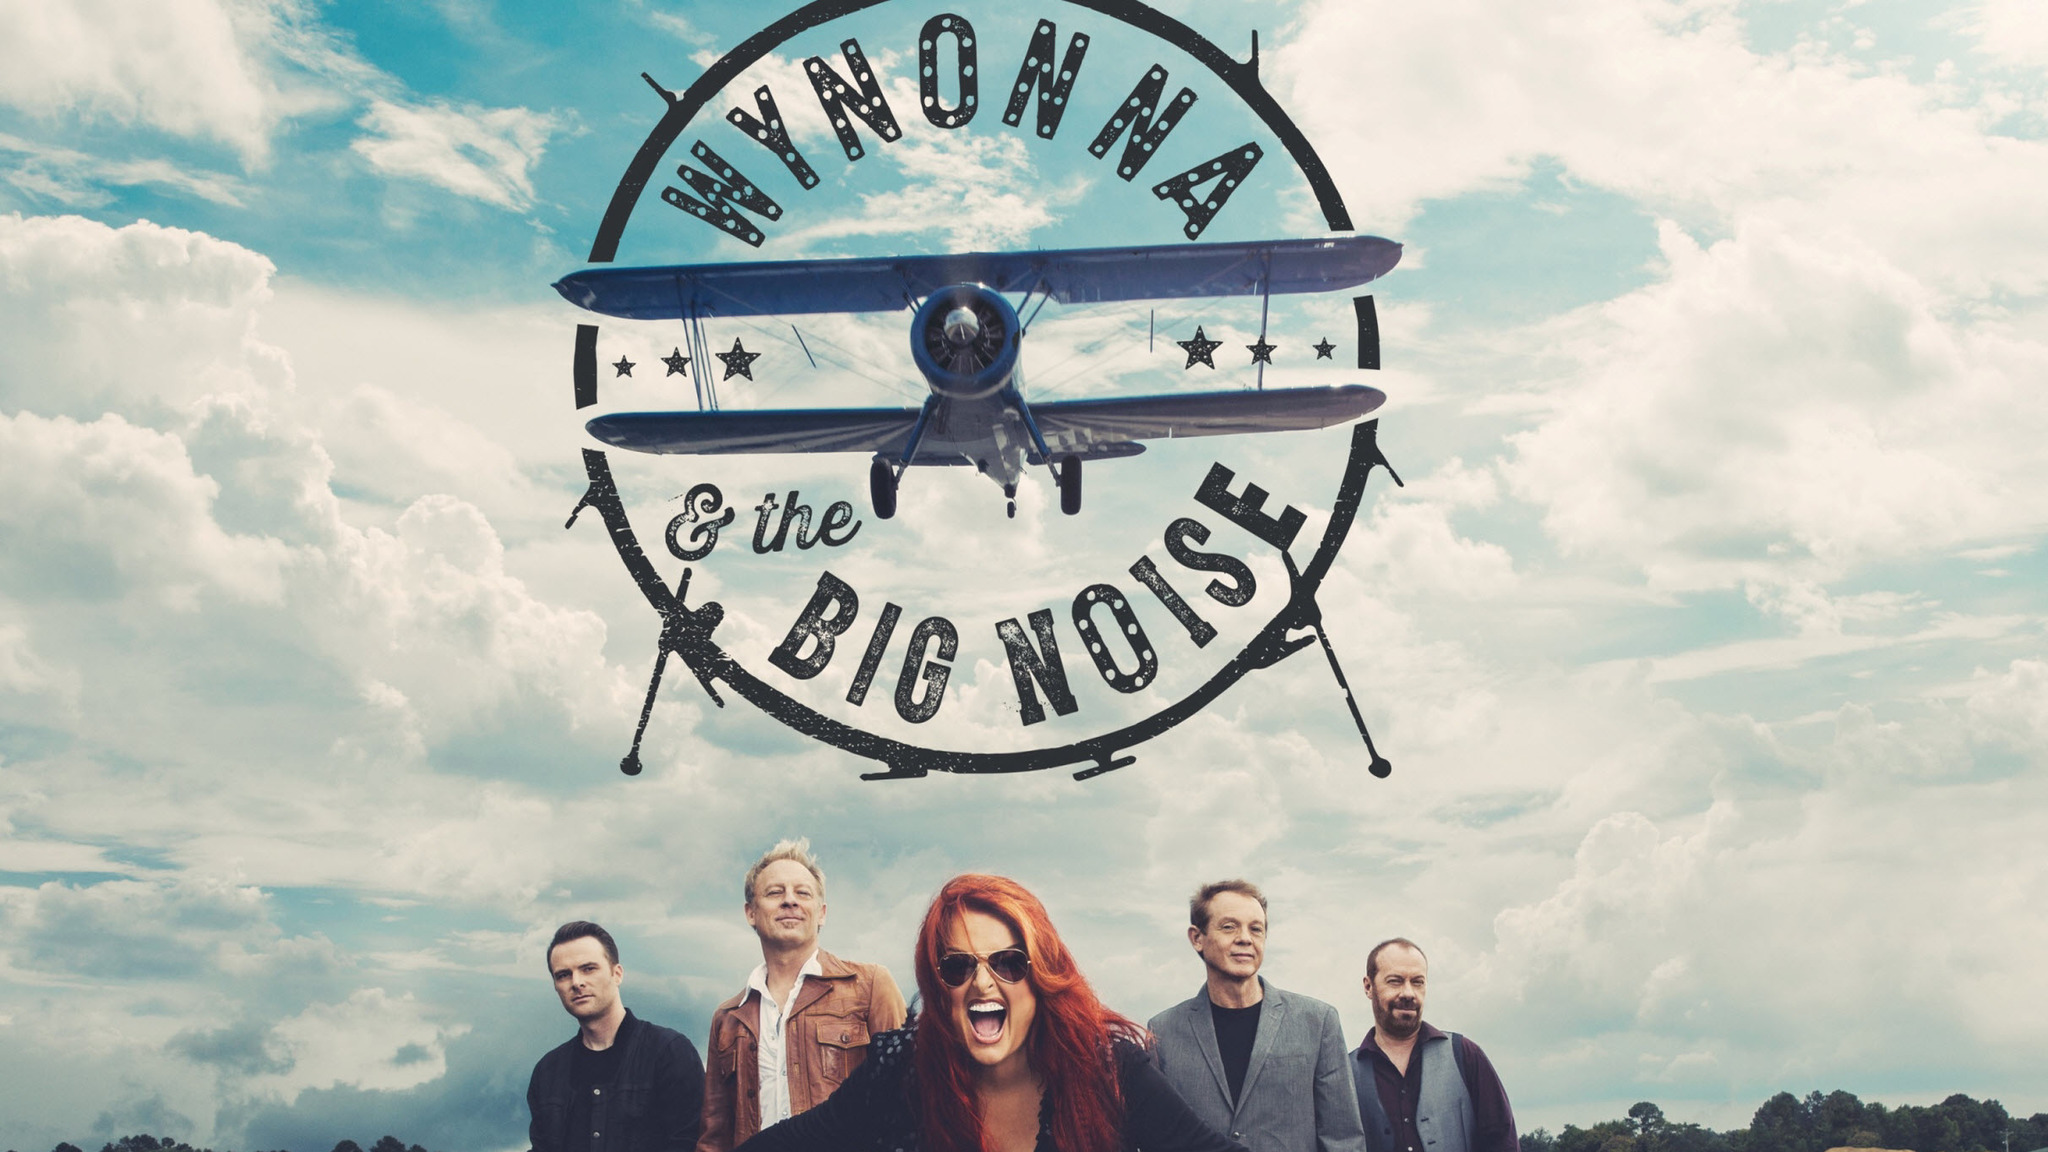 Tickets for Wynonna & The Big Noise in Eldon from ShowClix